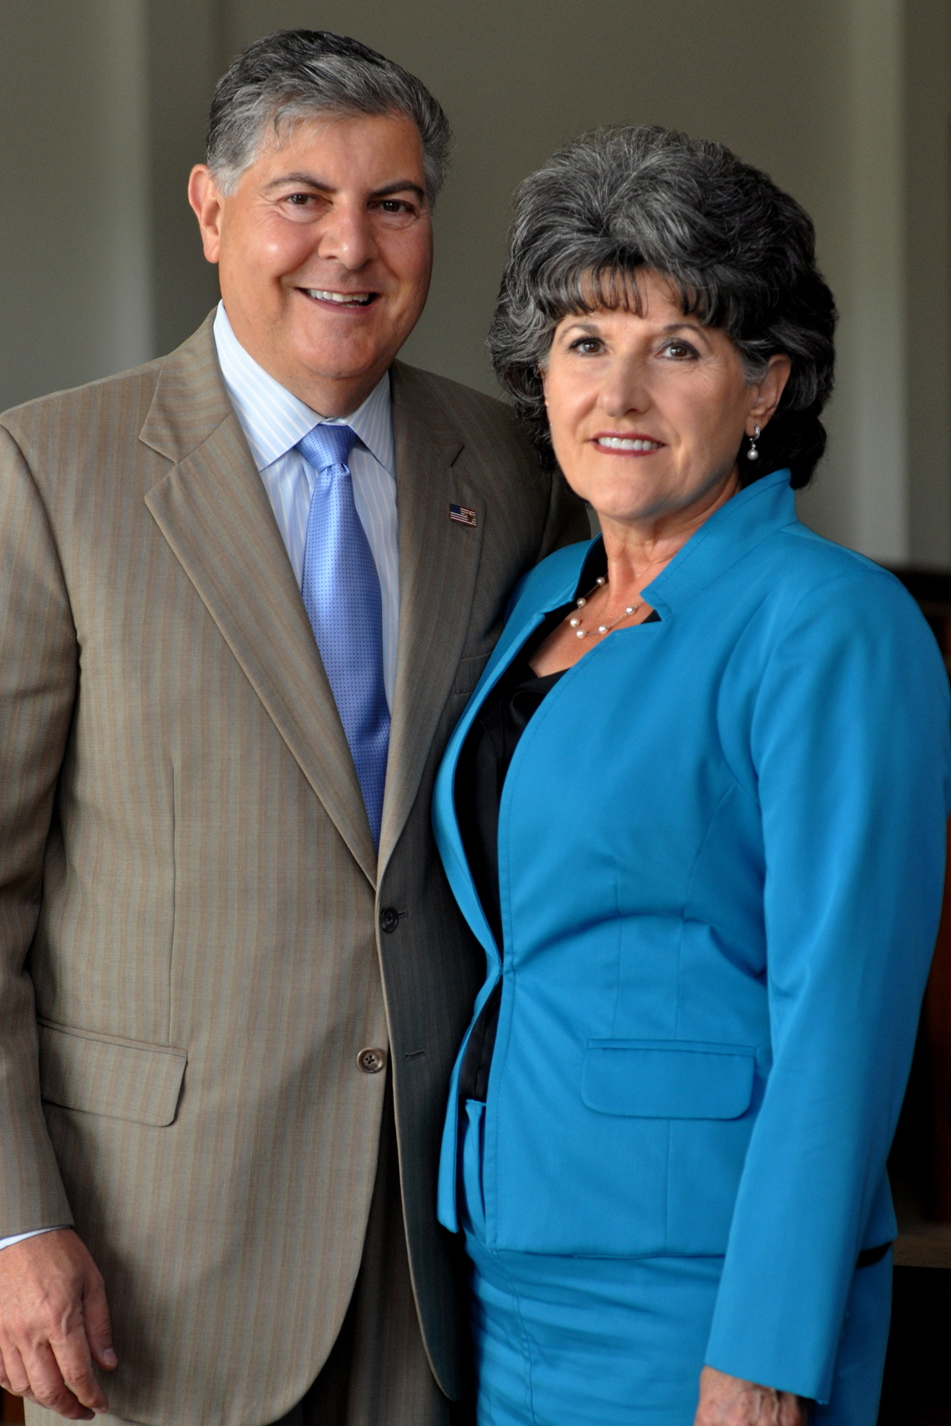 A new lecture hall on the Sacred Heart University campus will be named after New Canaan residents Frank and Marisa Martire in recognition of their $1 million donation.